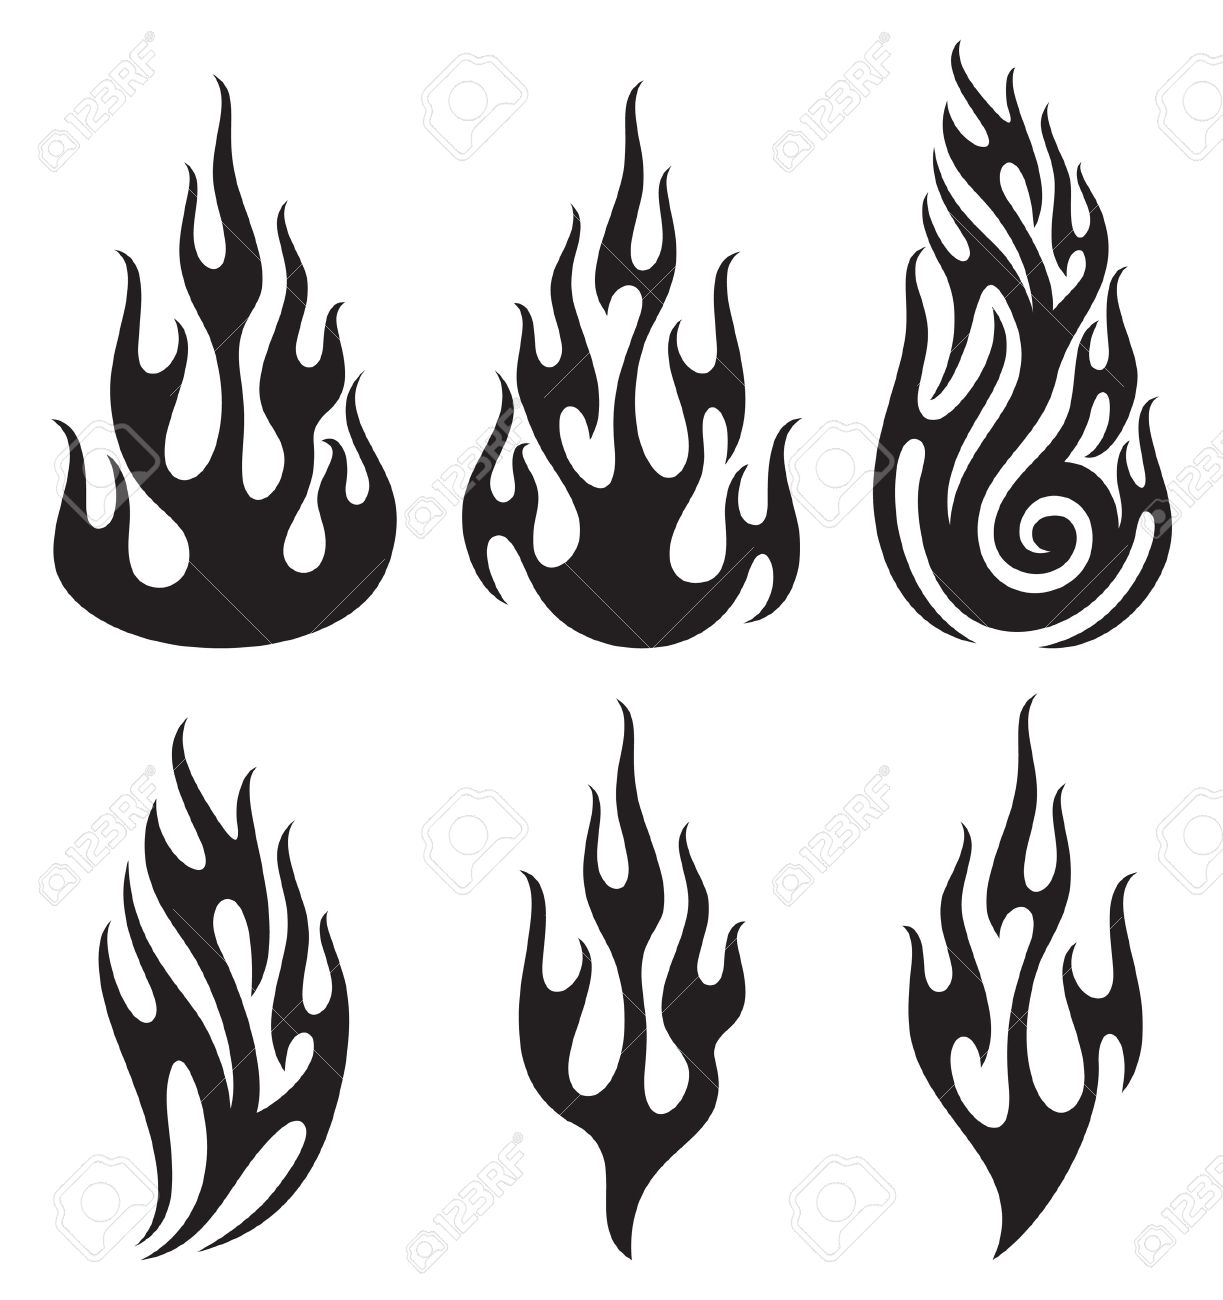 Library Of Free Black And White Flame Picture Library